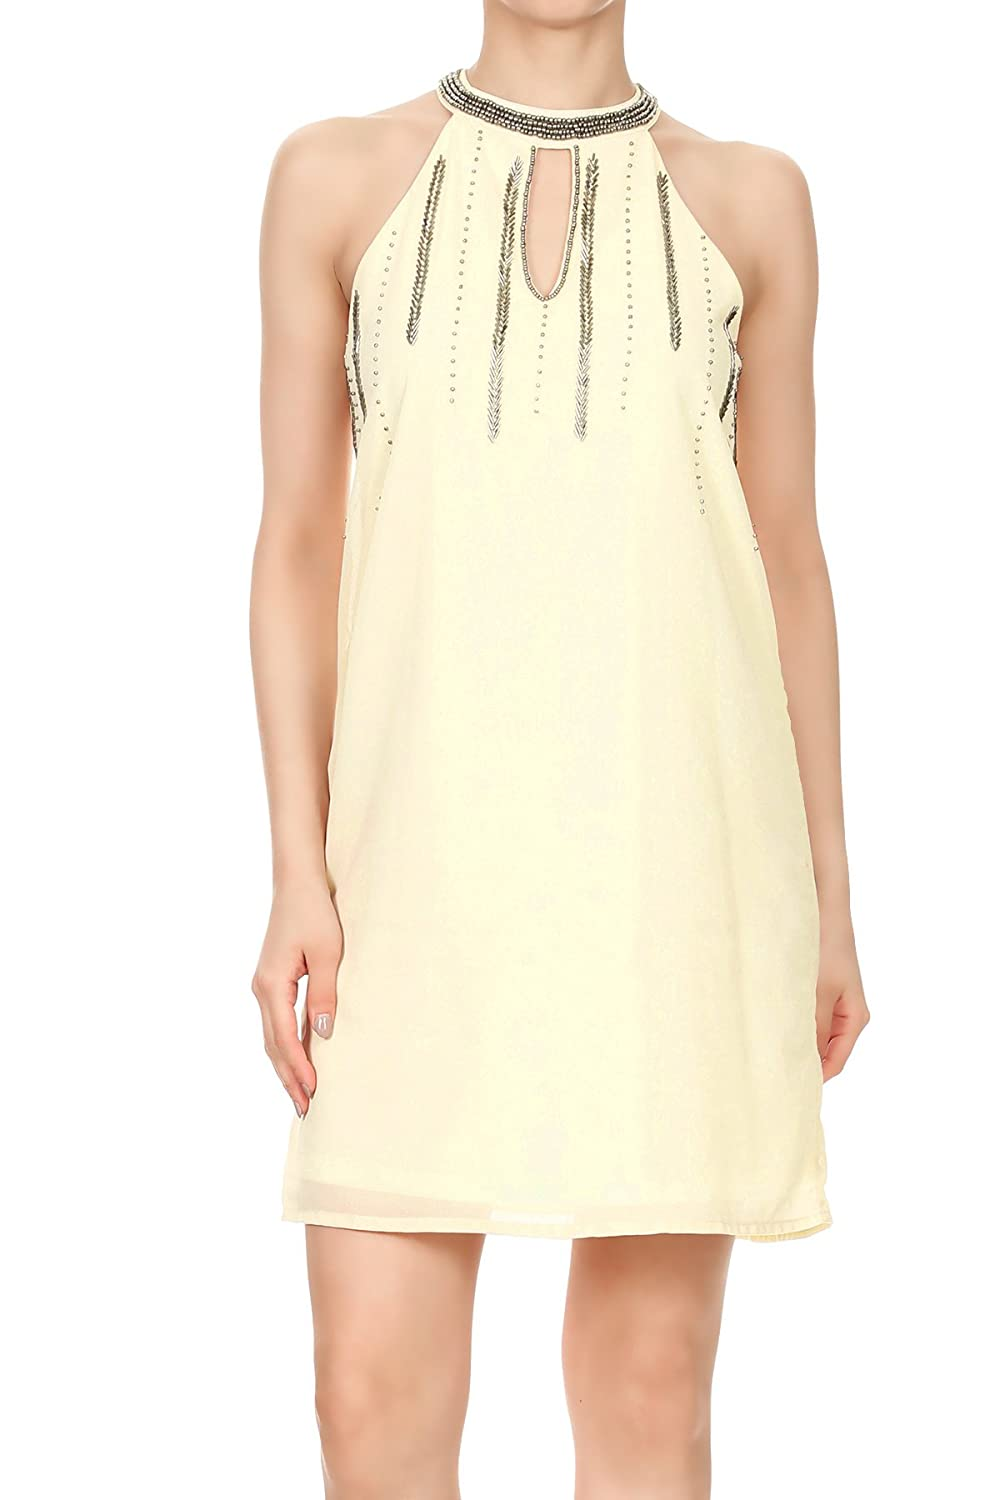 e27c135dab Anna-Kaci Womens Juniors Chiffon Halter Cocktail Party Clubbing Shift Dress  at Amazon Women s Clothing store